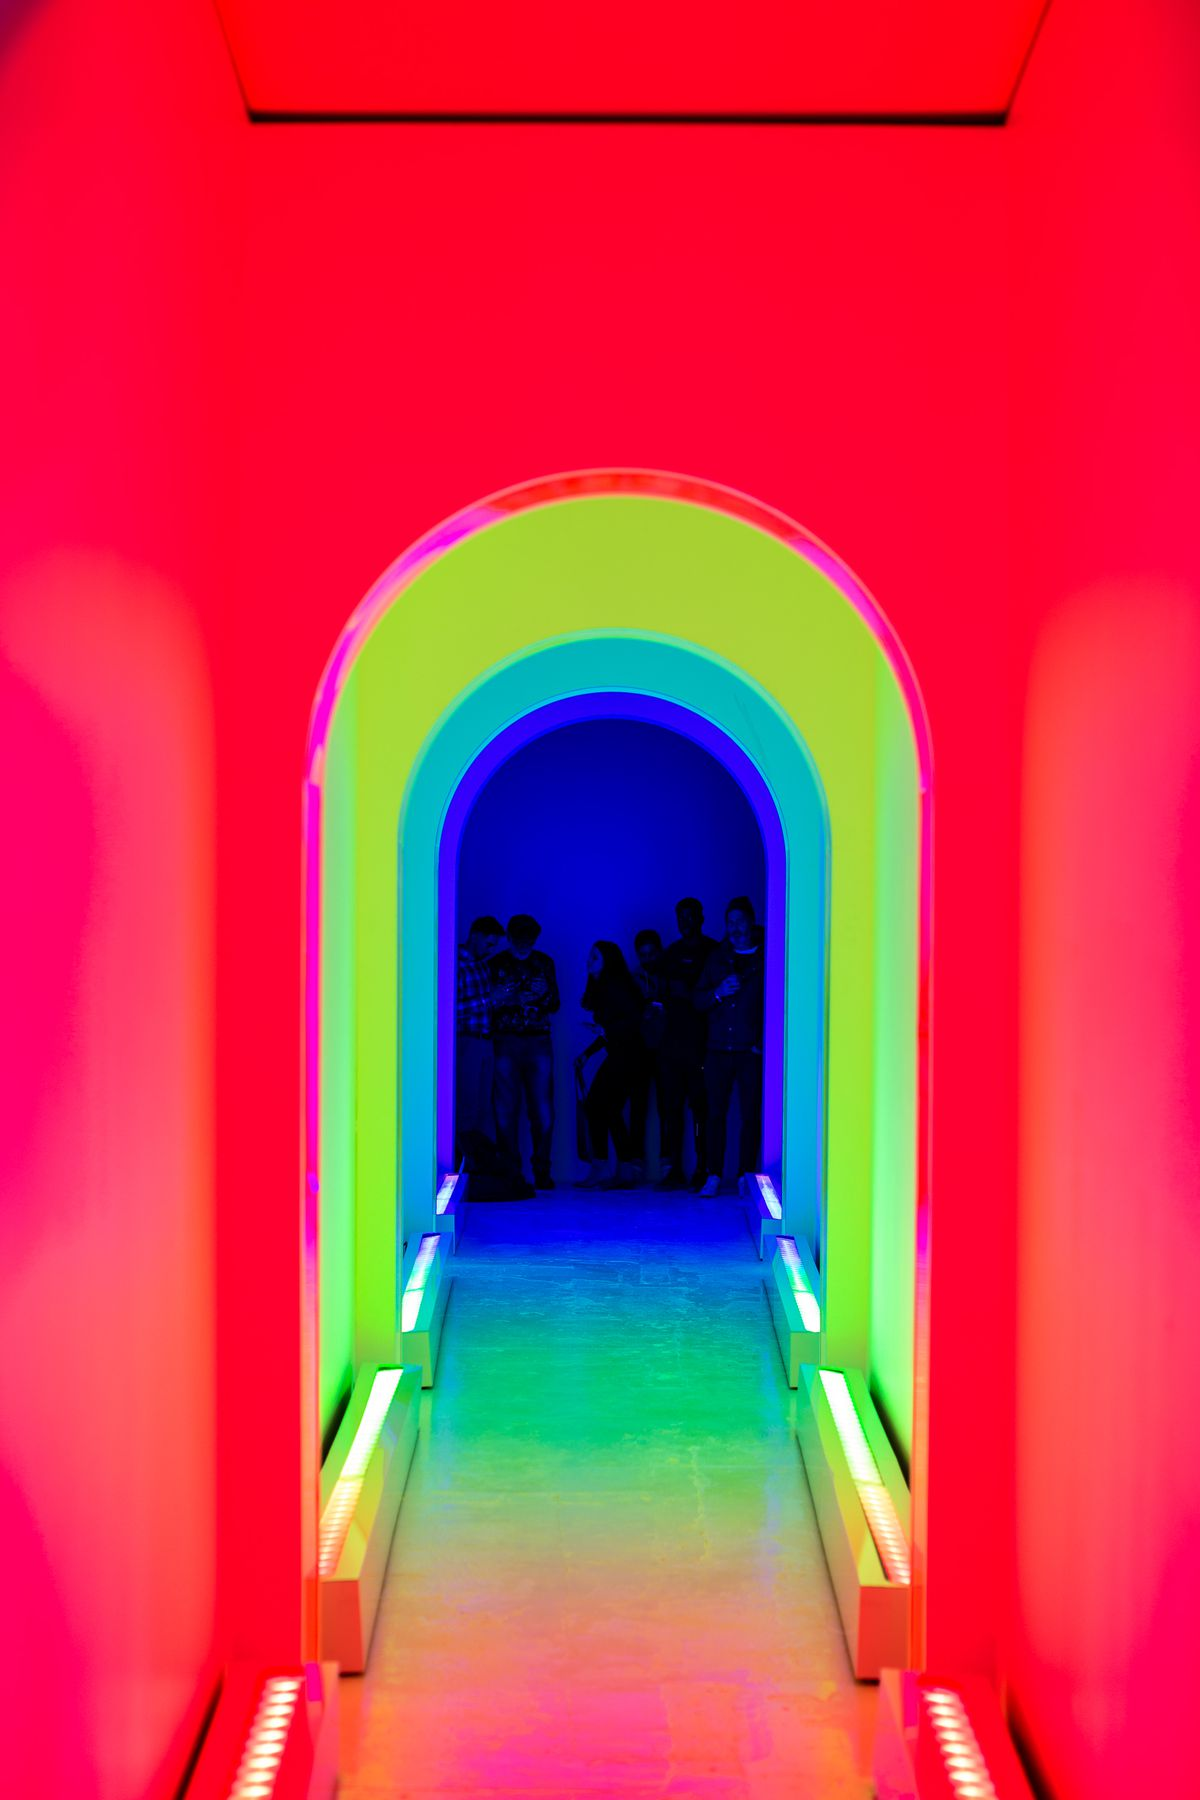 Dream Machine rainbow hallway lit up with different colors leading up to attendees taking pictures of the hallway